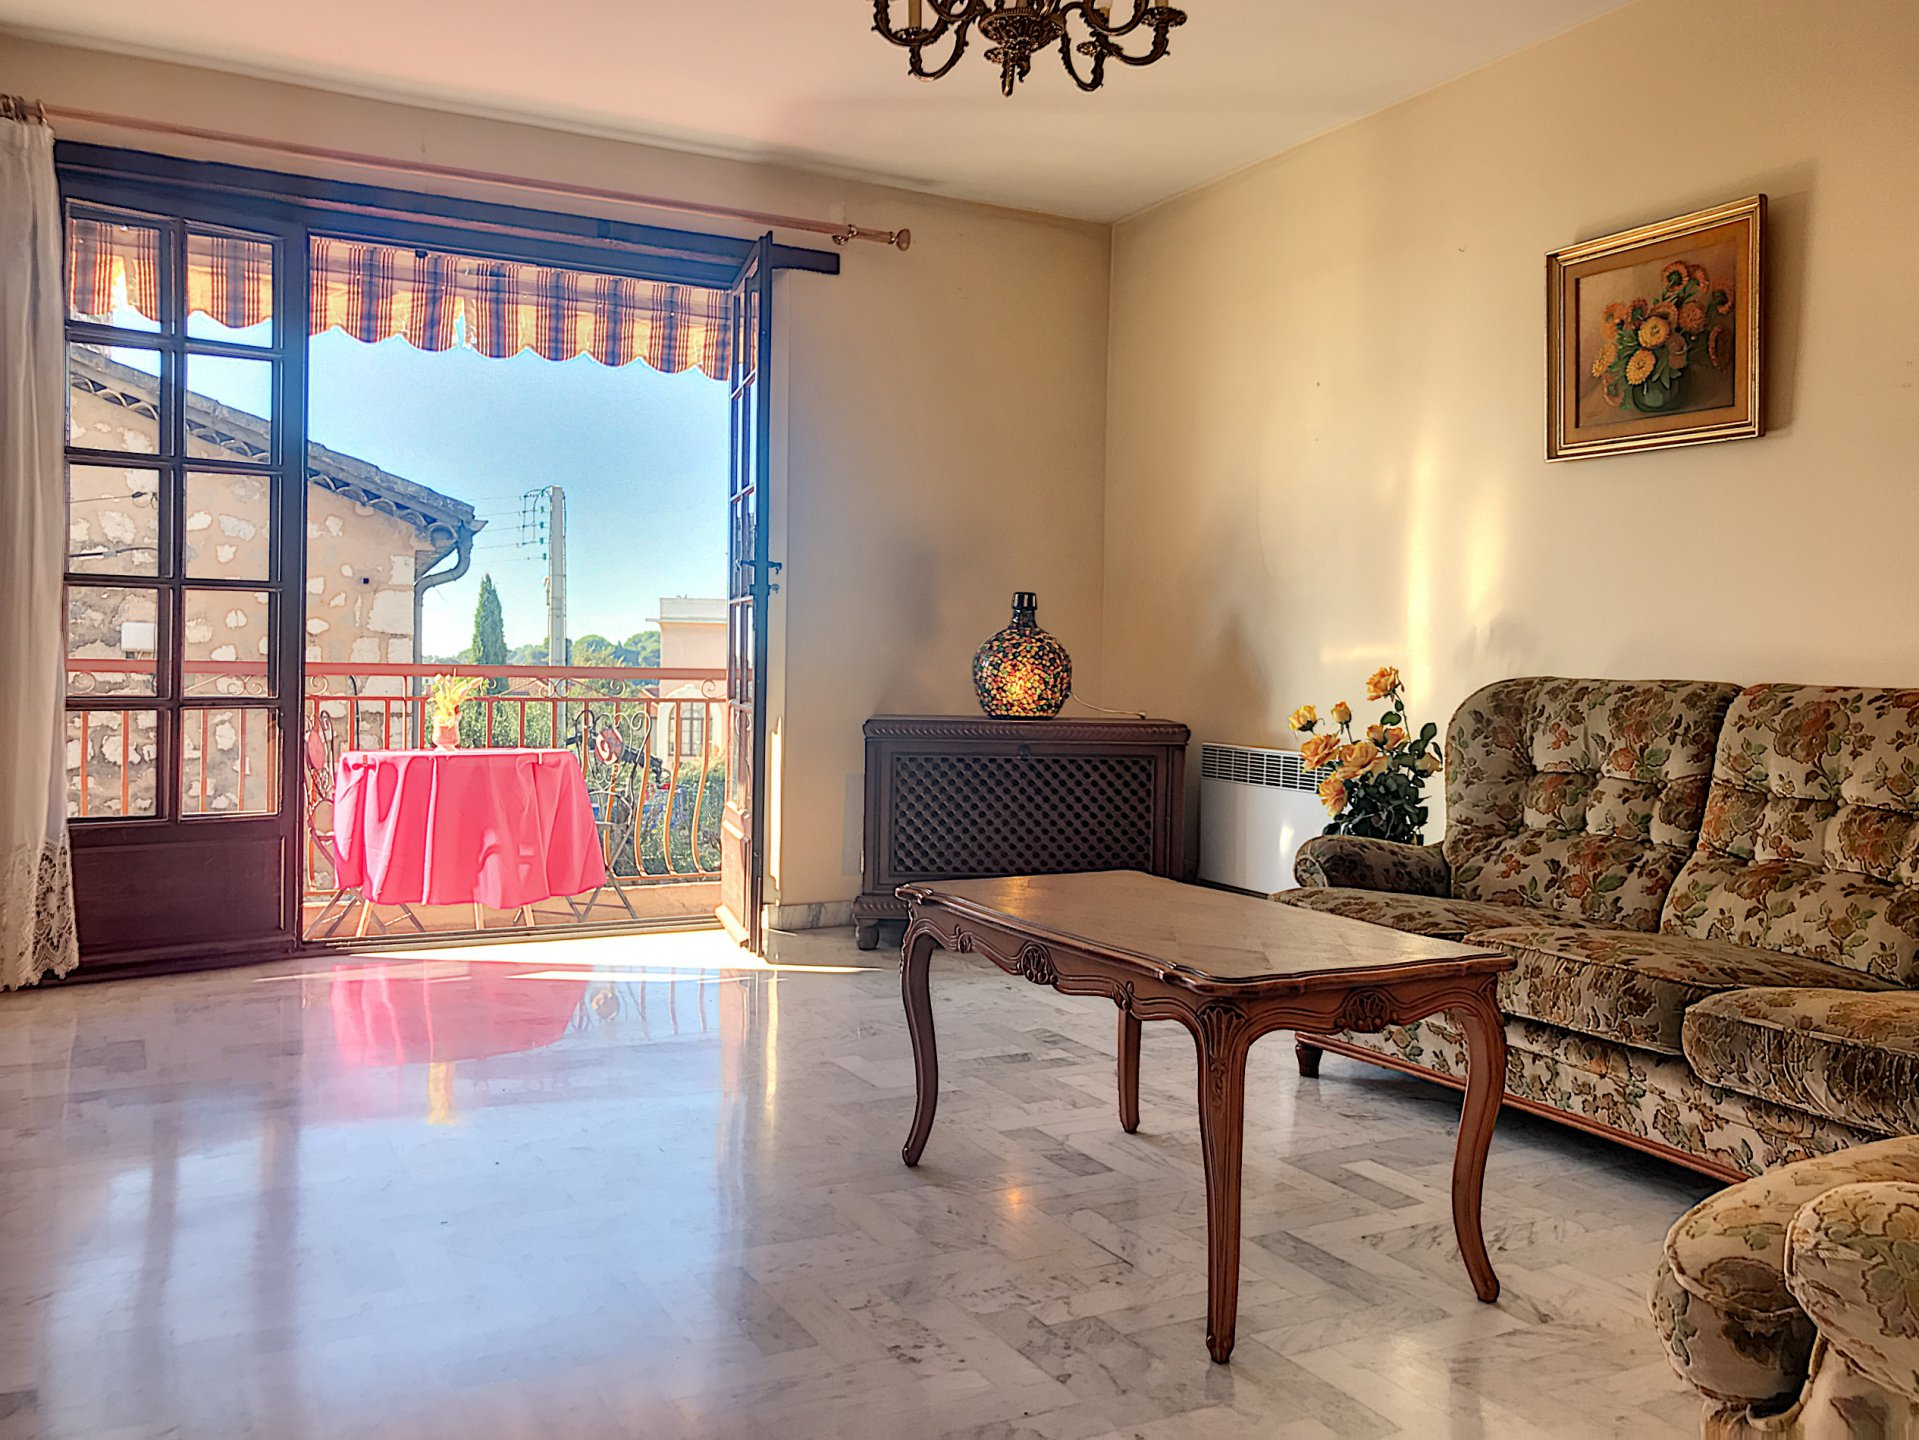 Apartment in Vence with balcony close to the village